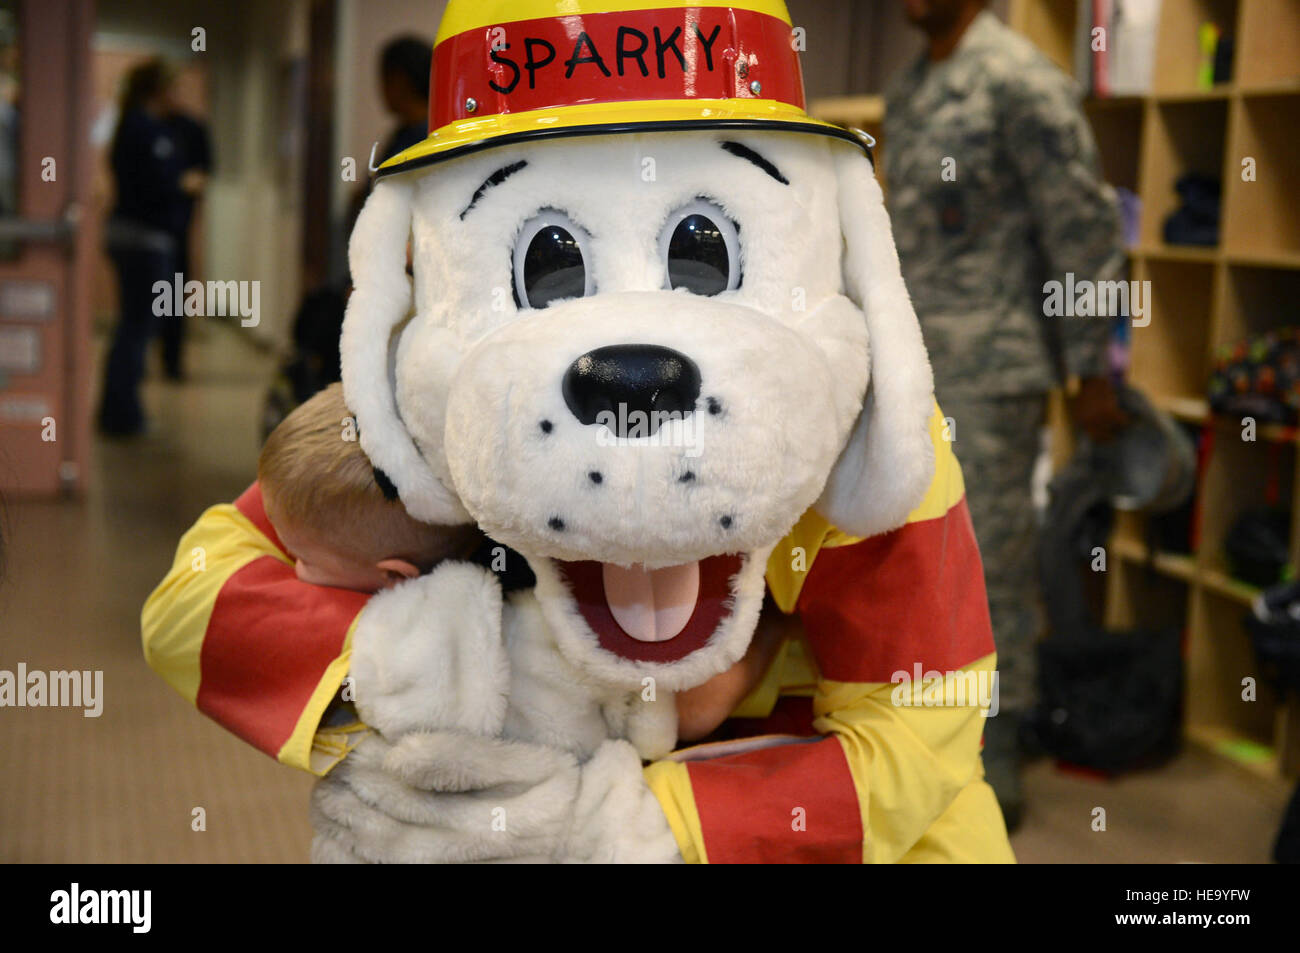 Sparky The Fire Dog Hugs A Child At Spangdahlem Air Base Germany Oct 9 2013 During Prevention Week Airman 1st Class Kyle Gese